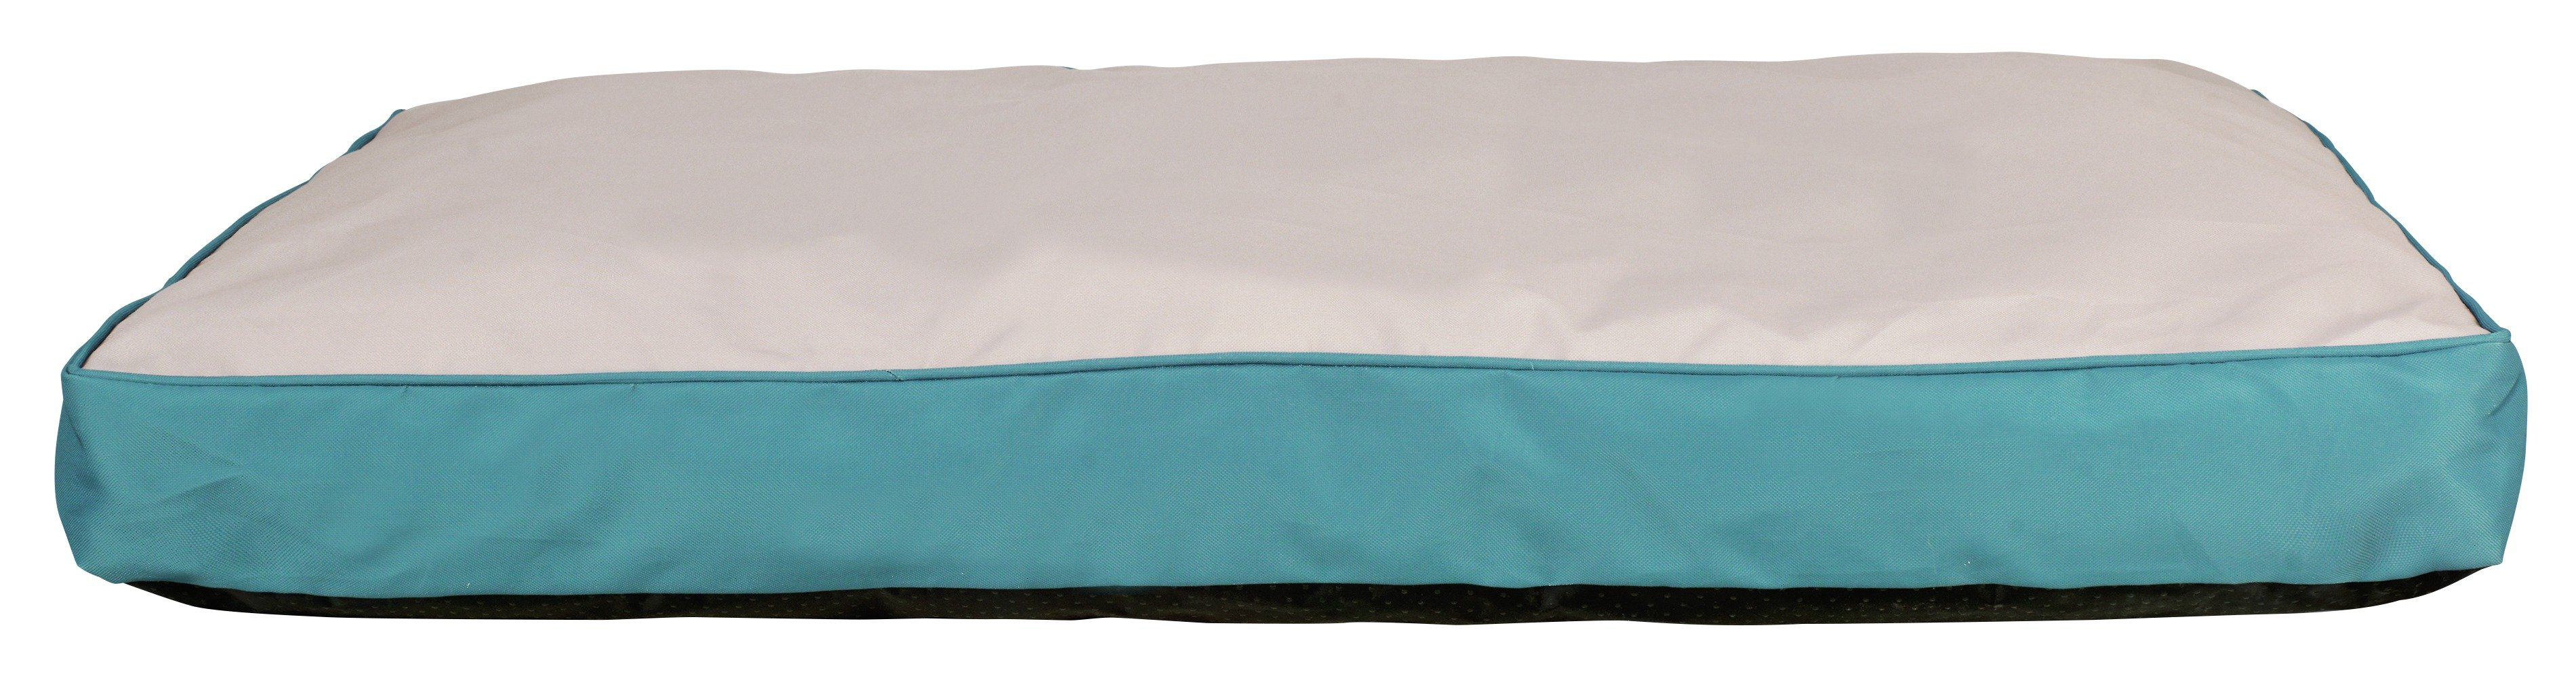 Image of Oxford Outdoor Large Pet Mattress